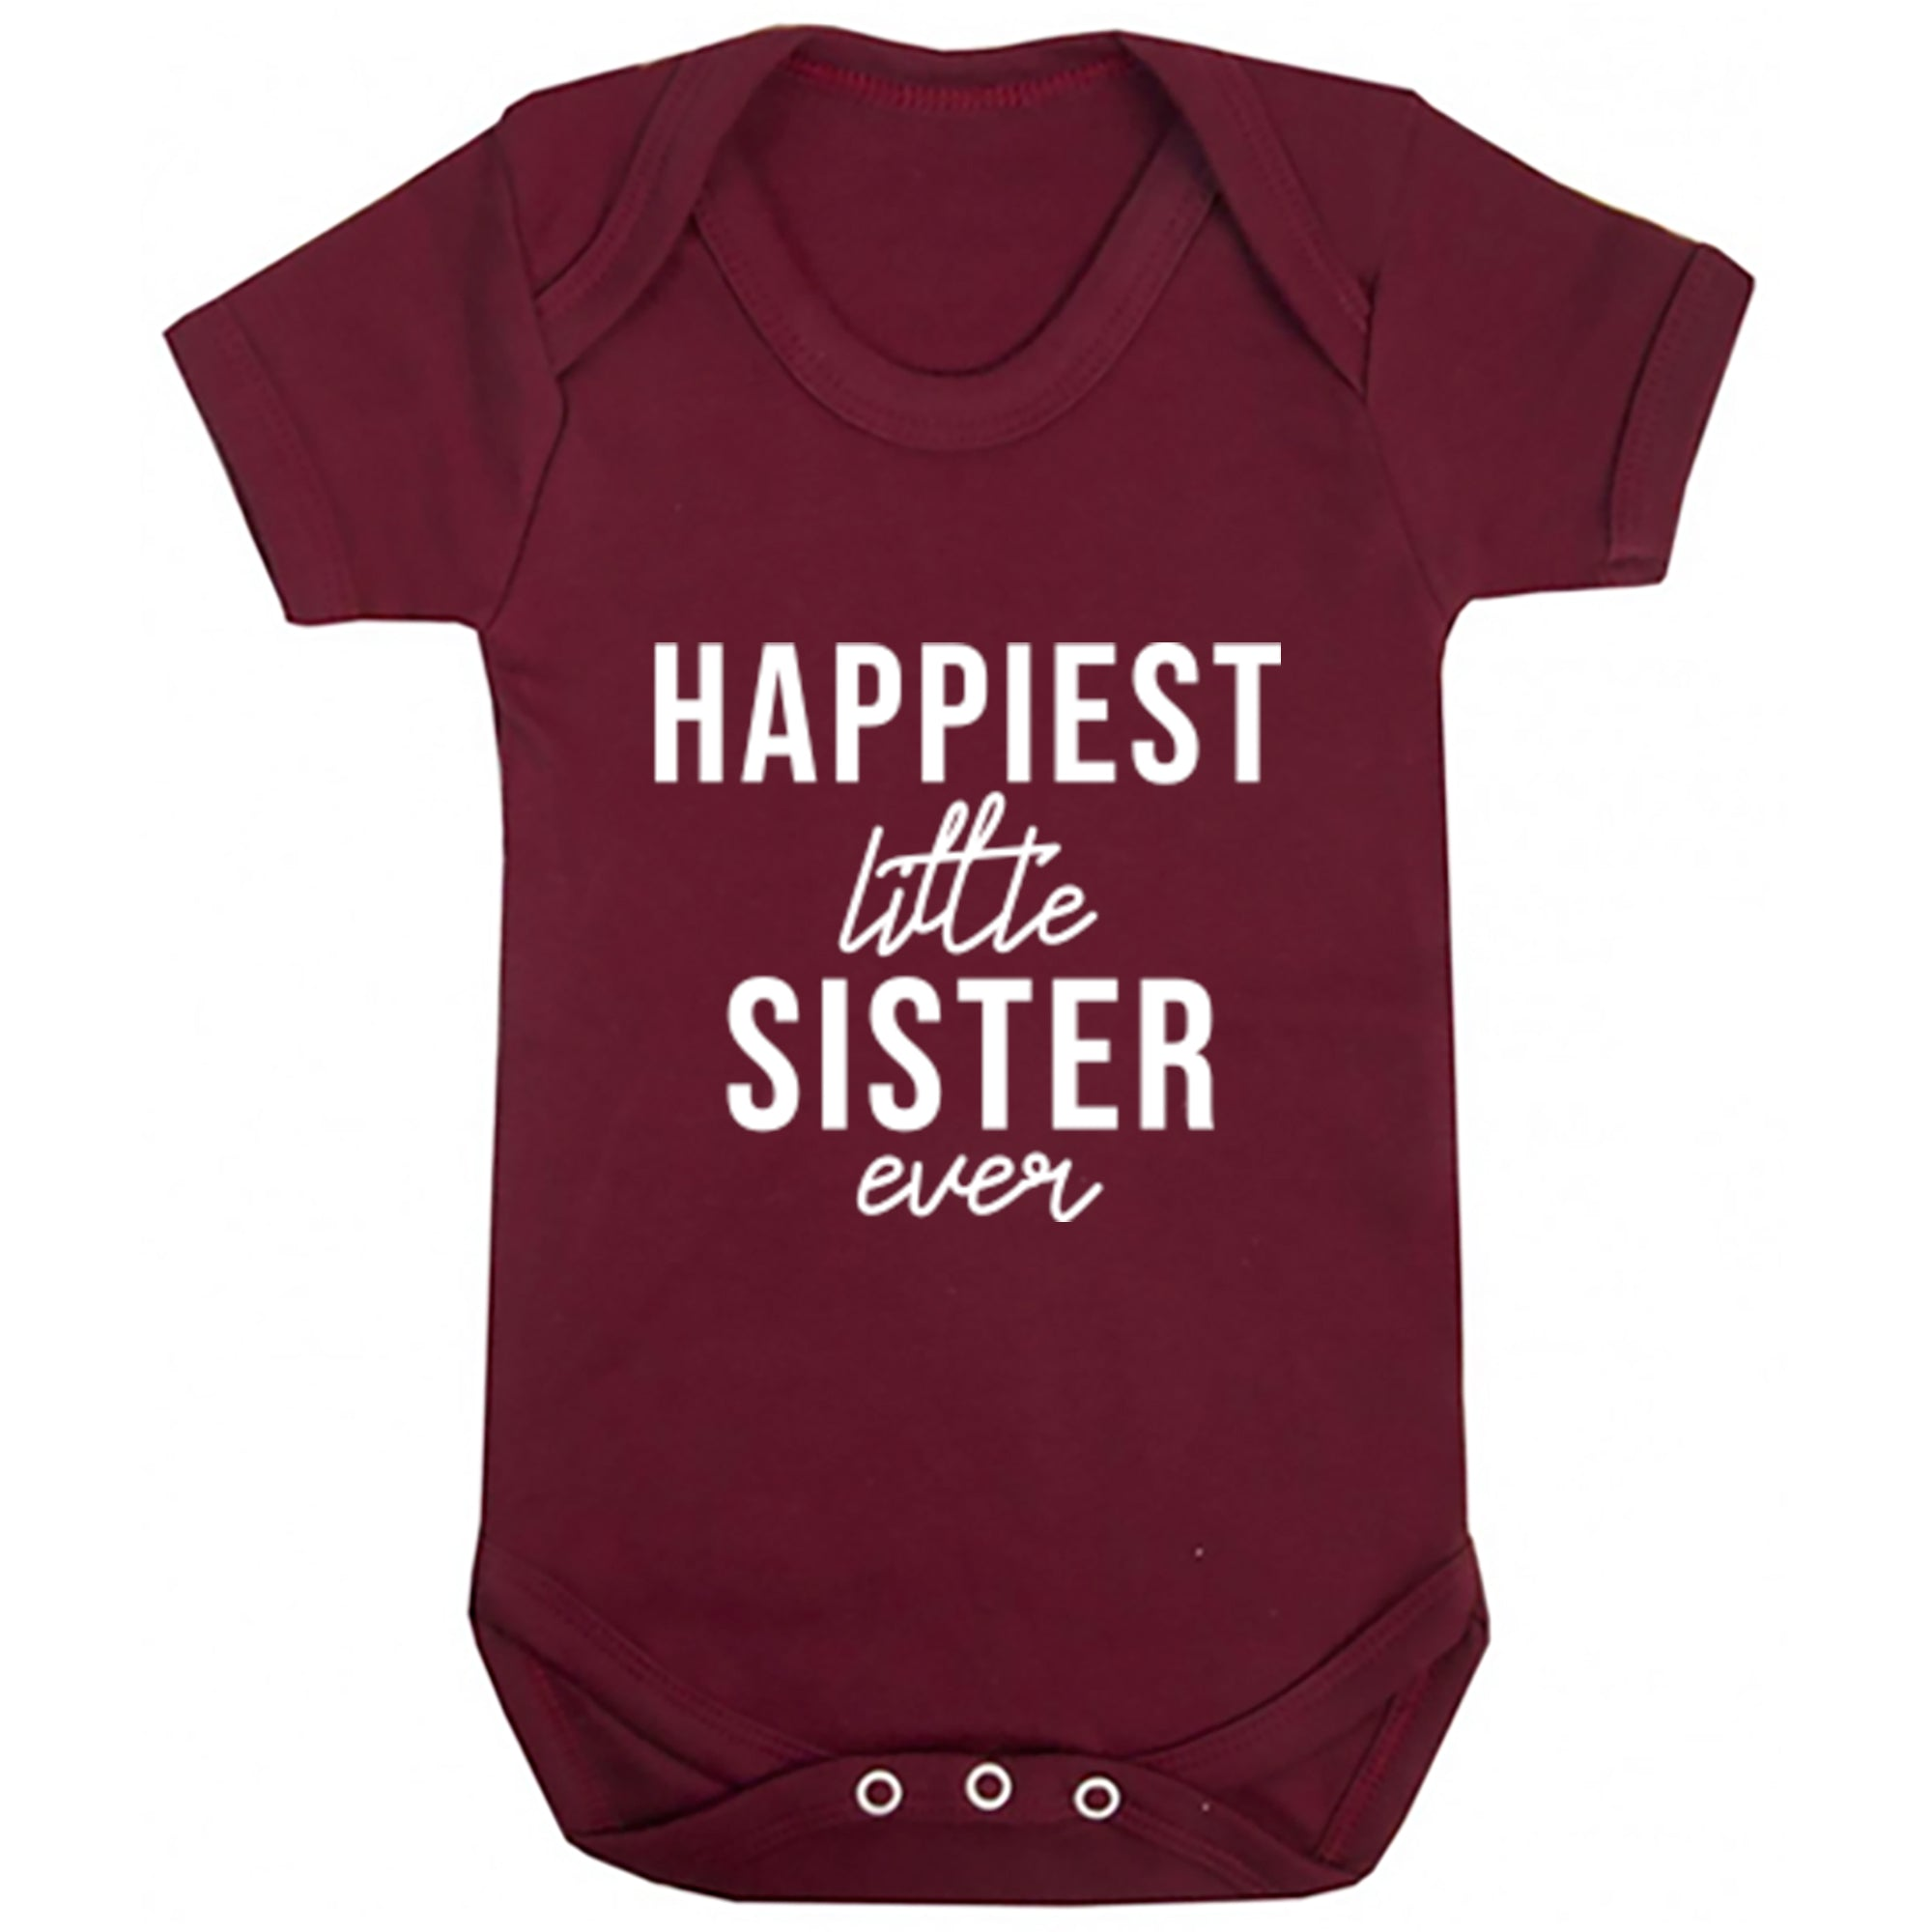 Happiest Little Sister Ever Baby Vest S0509 - Illustrated Identity Ltd.